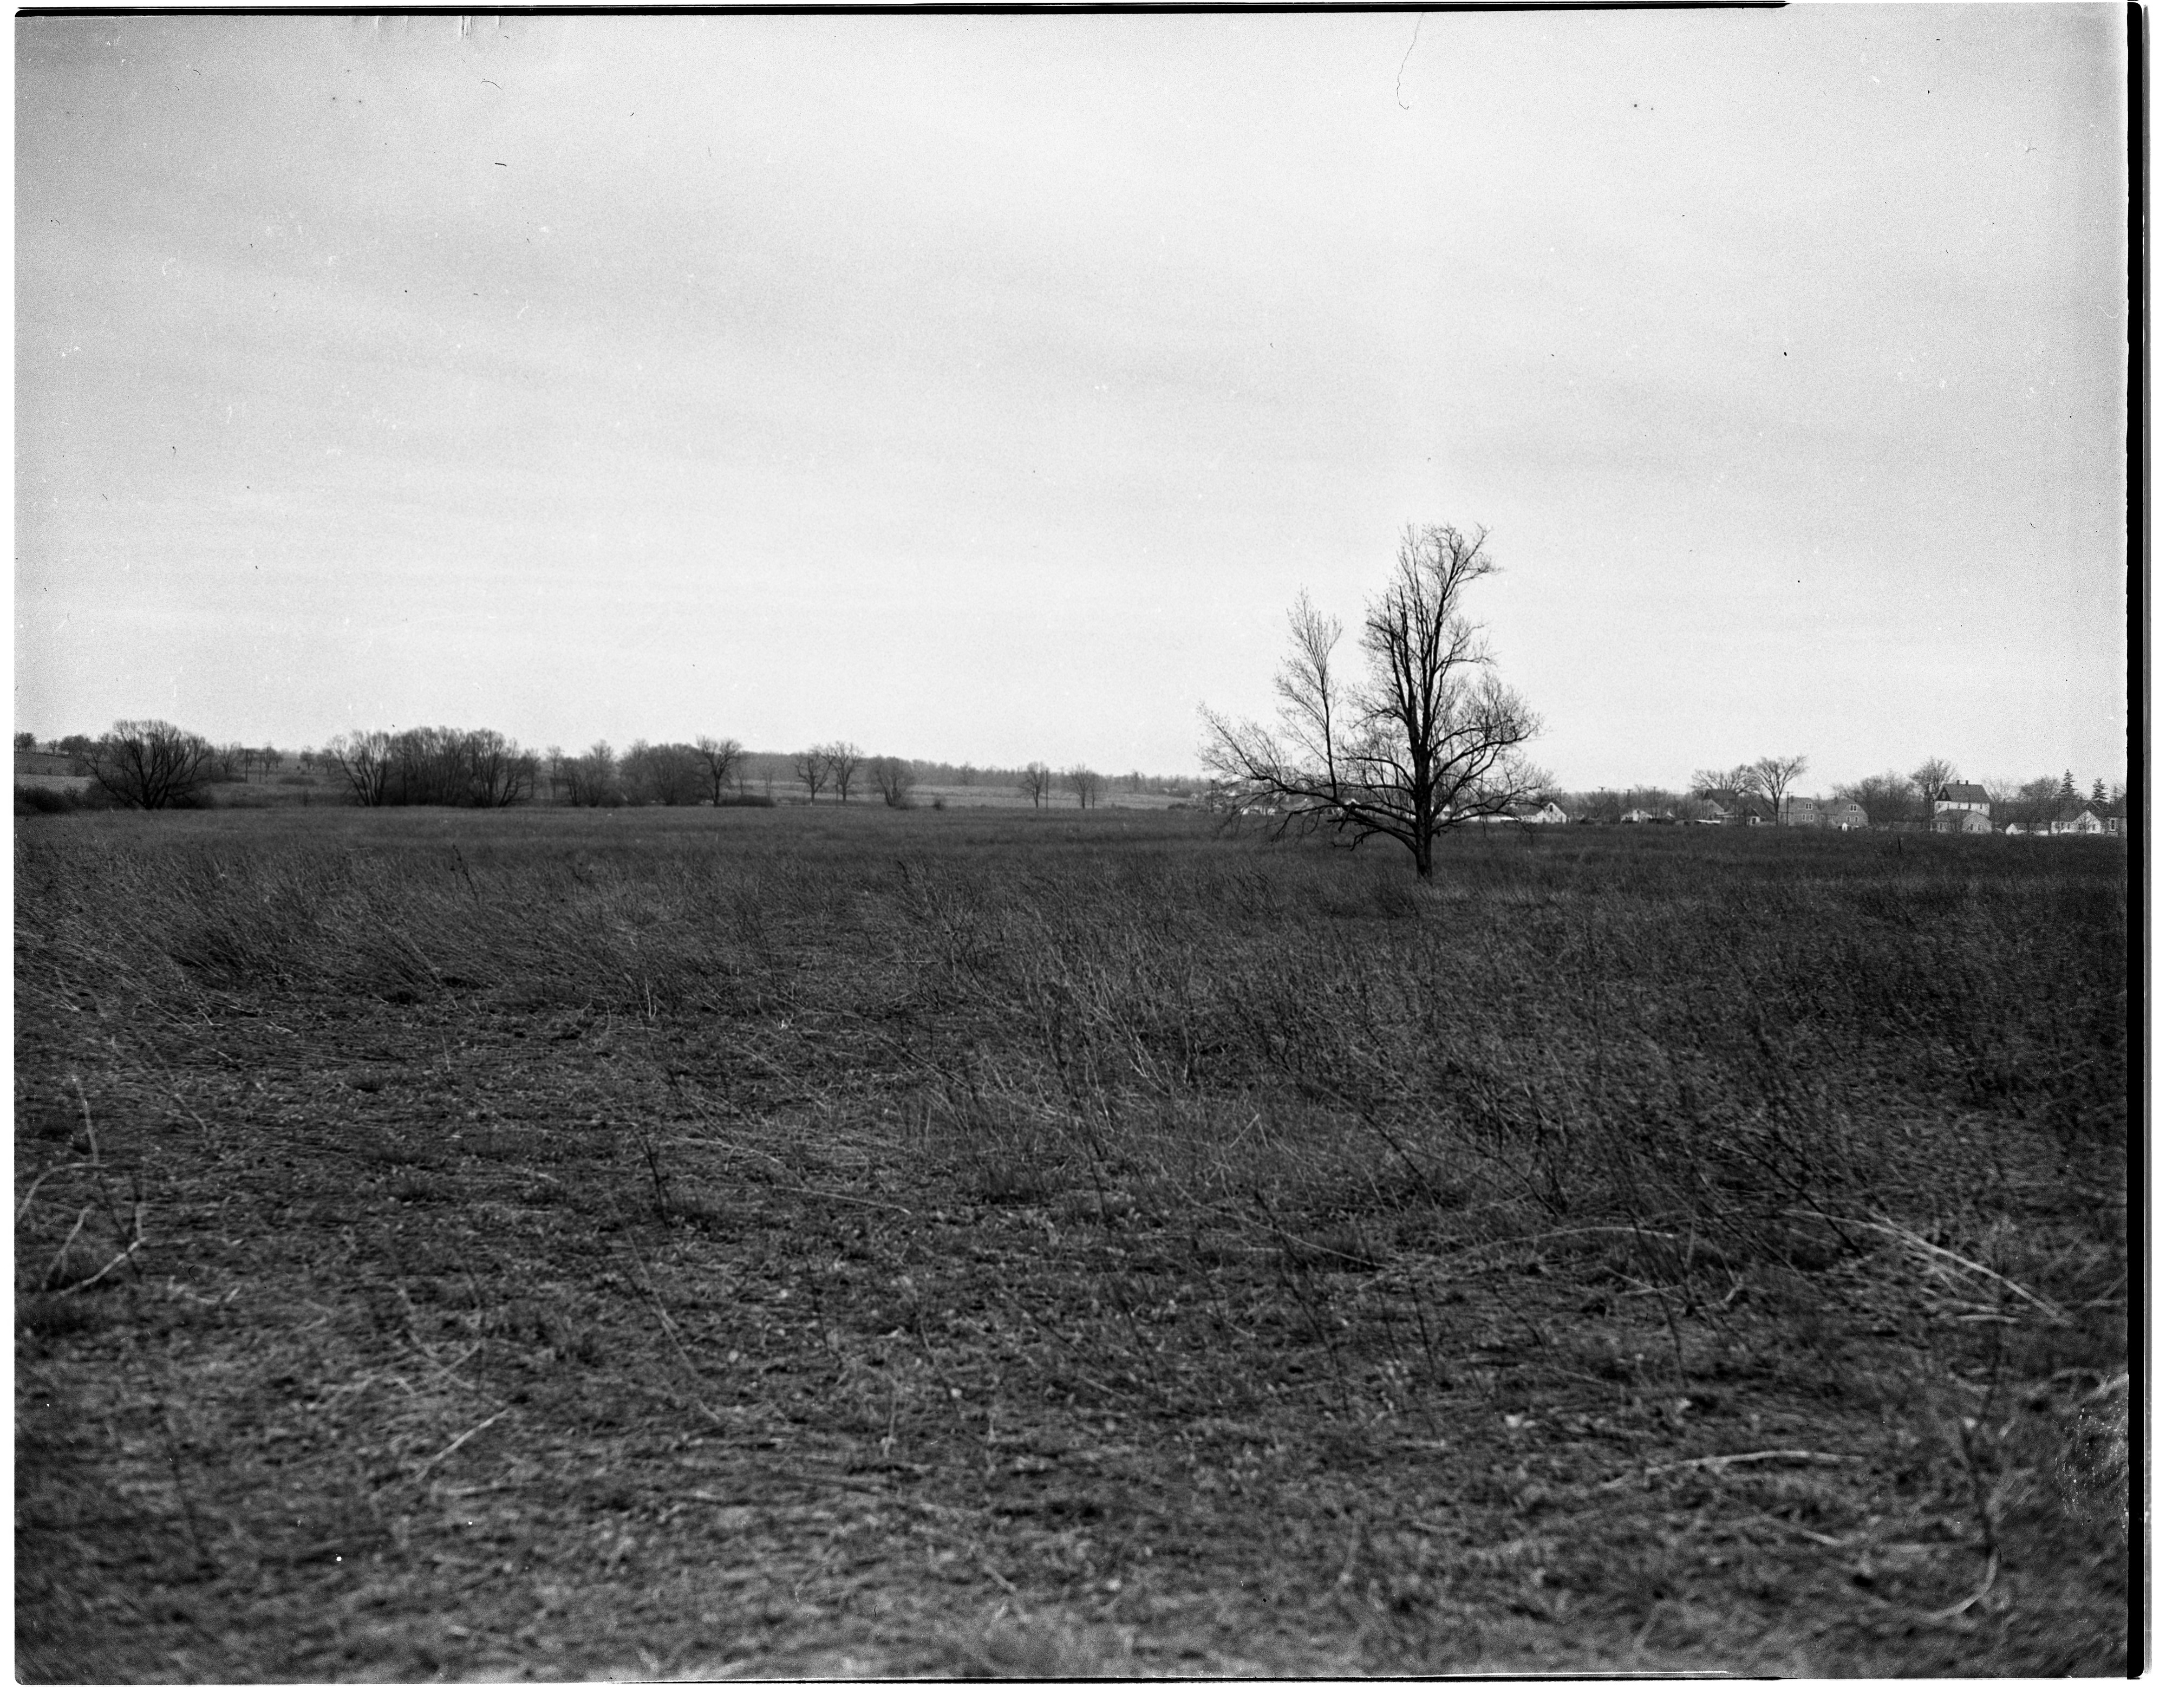 Land for New Building Development in Pittsfield, May 1943 image